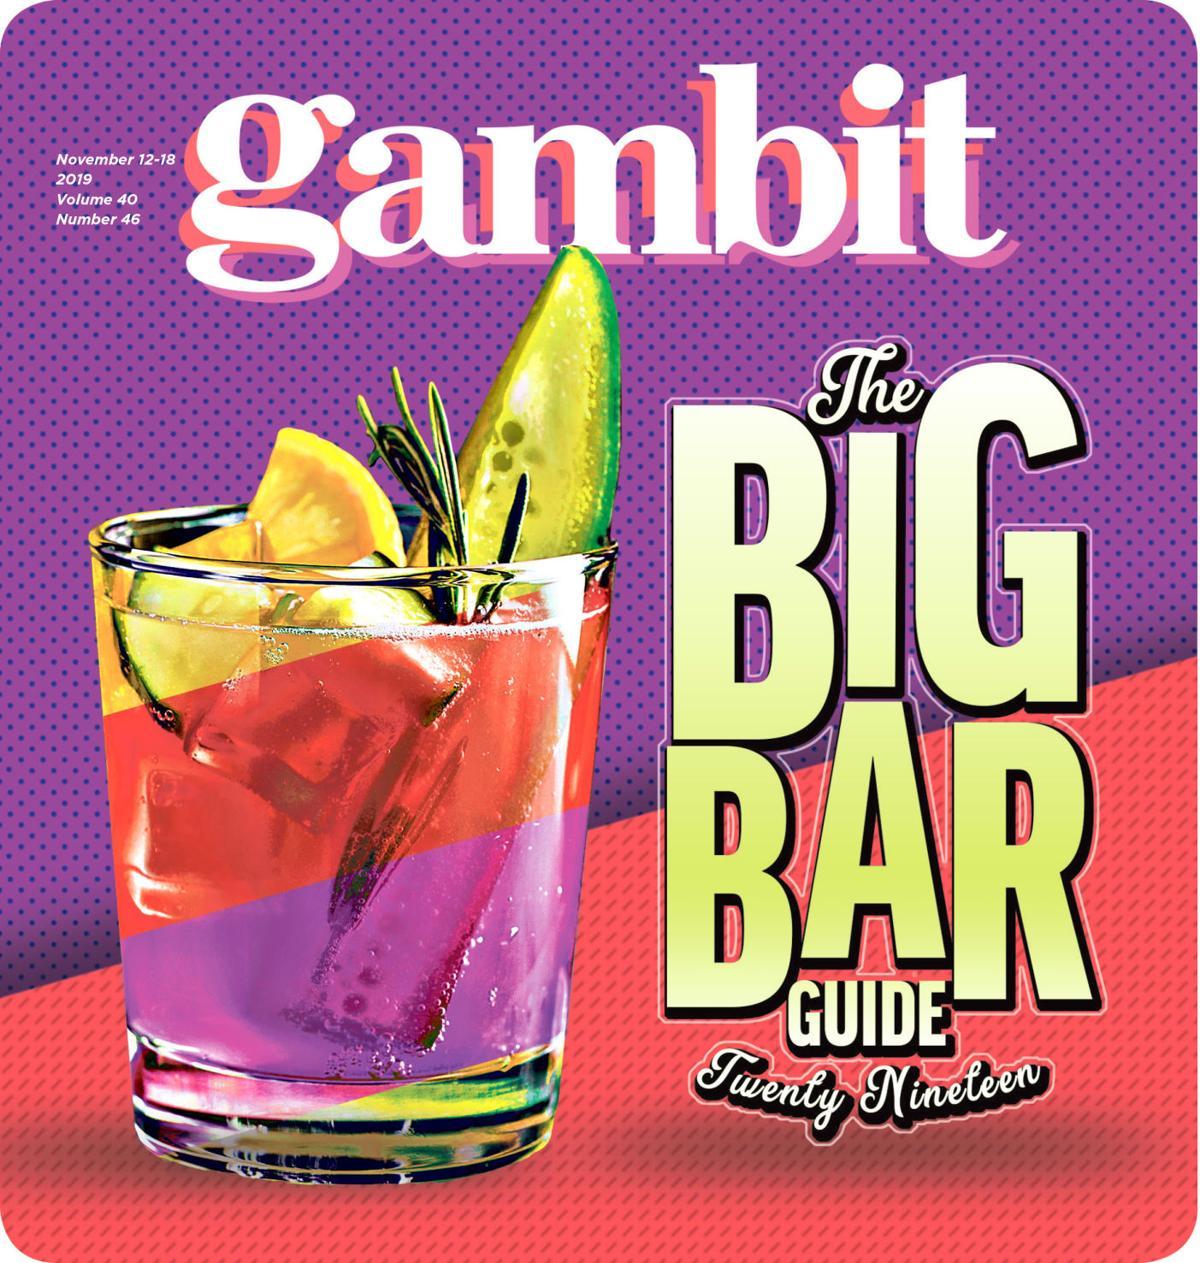 Gambit's Big Bar Guide 2019: Funky spaces, music clubs, gay bars, hotel hotspots, we've got it all